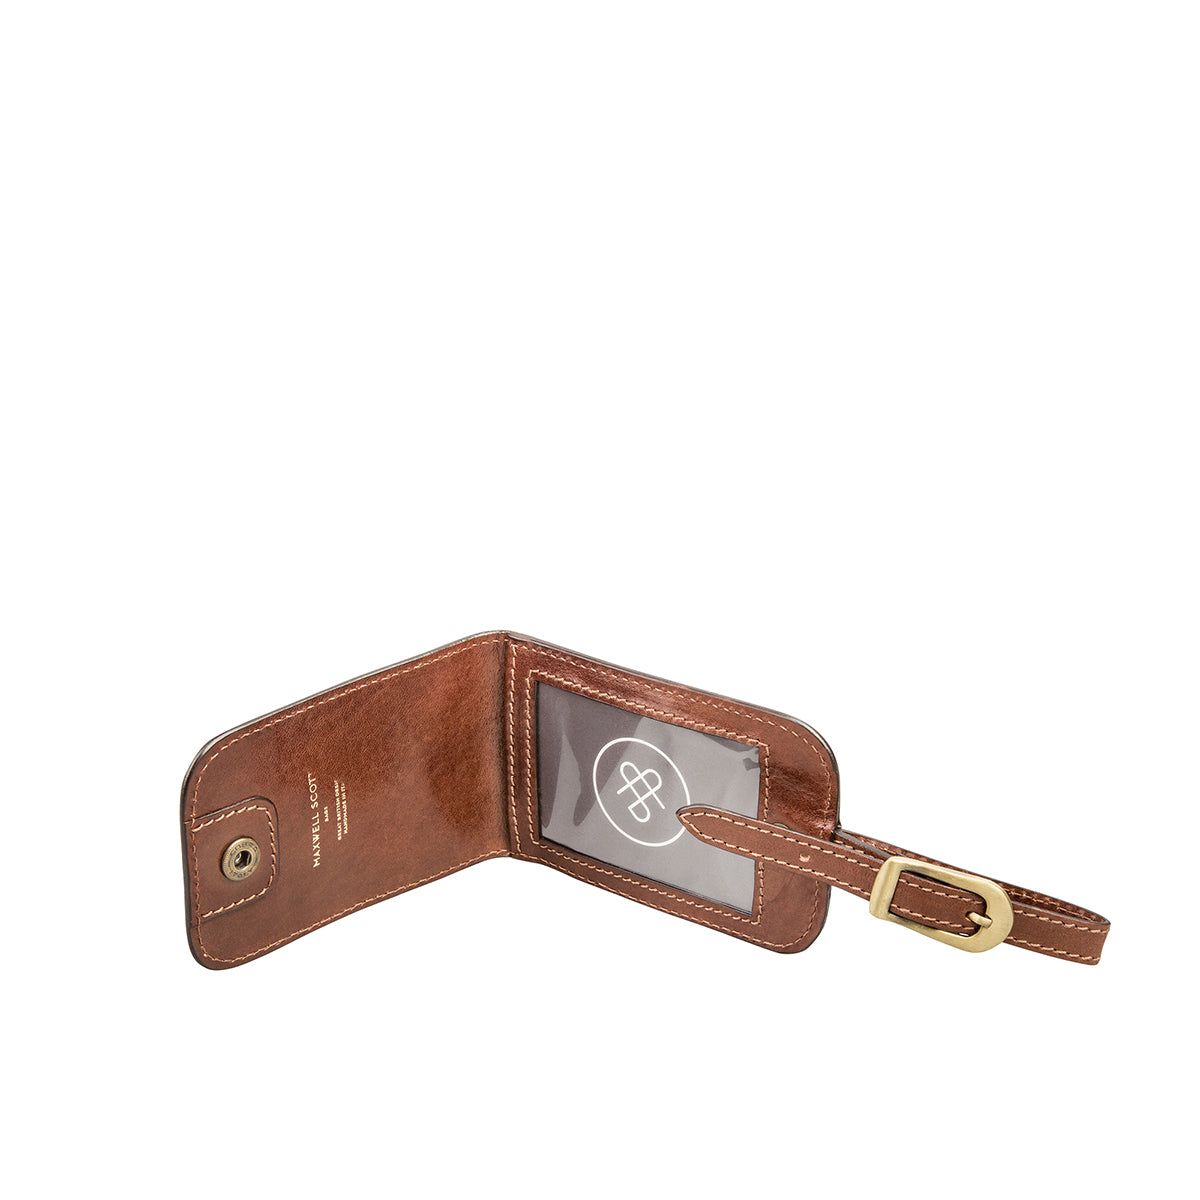 Image 3 of the 'Ledro' Leather Luggage Tag